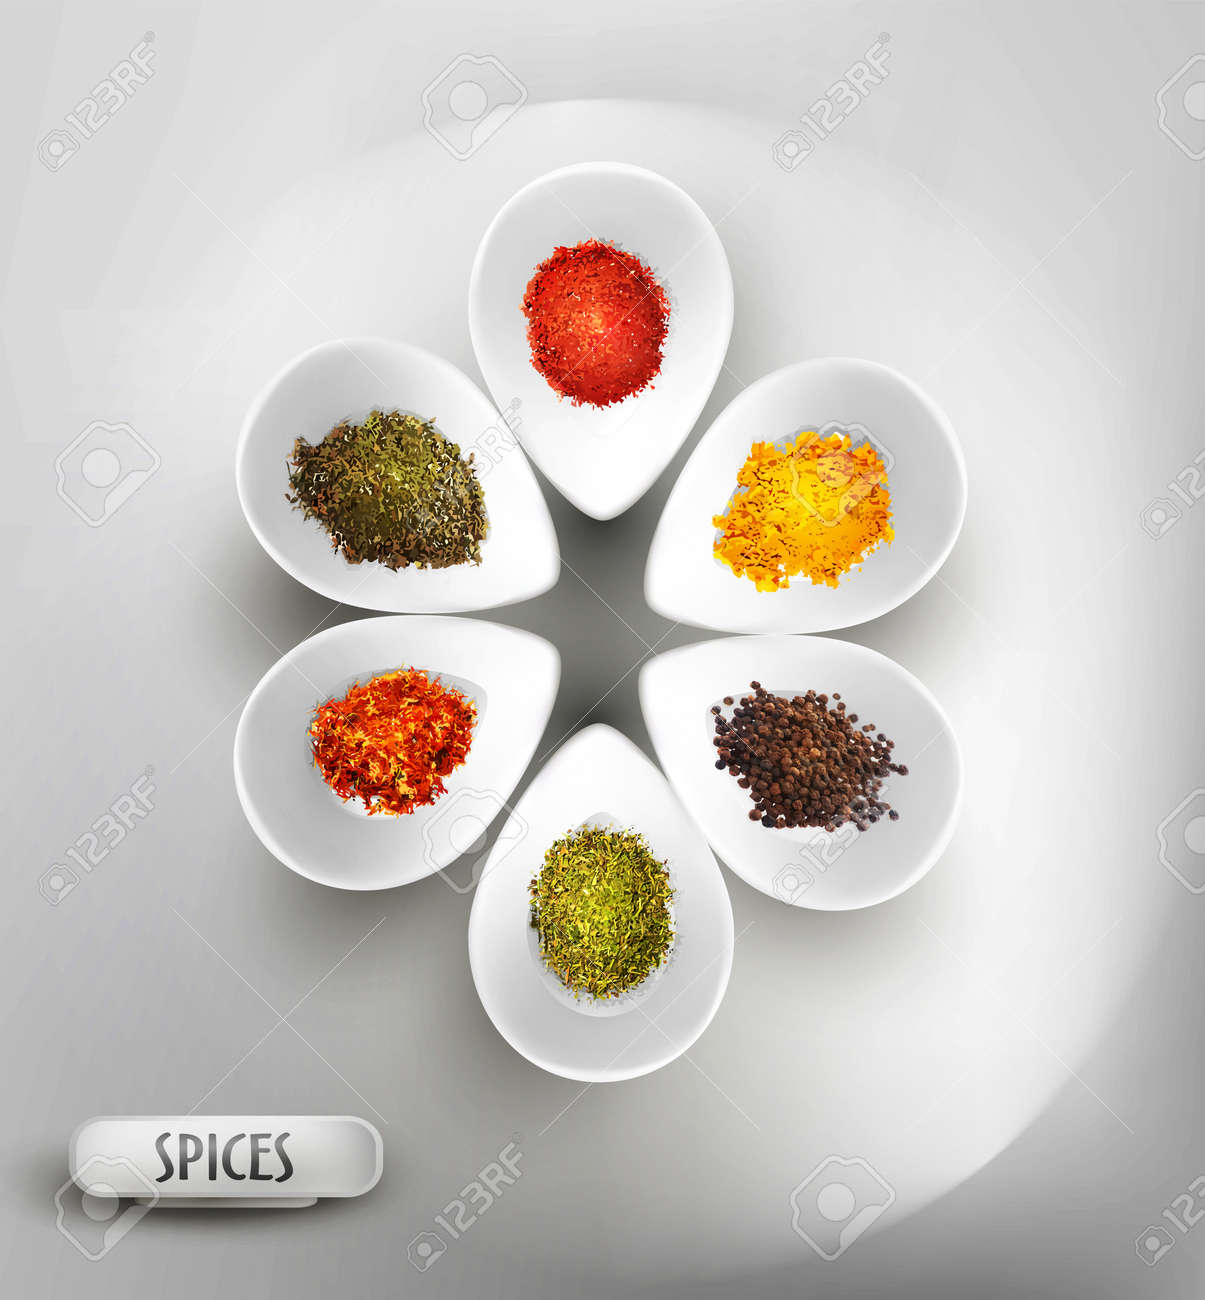 vector background with white bowl on the table, the filling of spices Stock Vector - 18083218